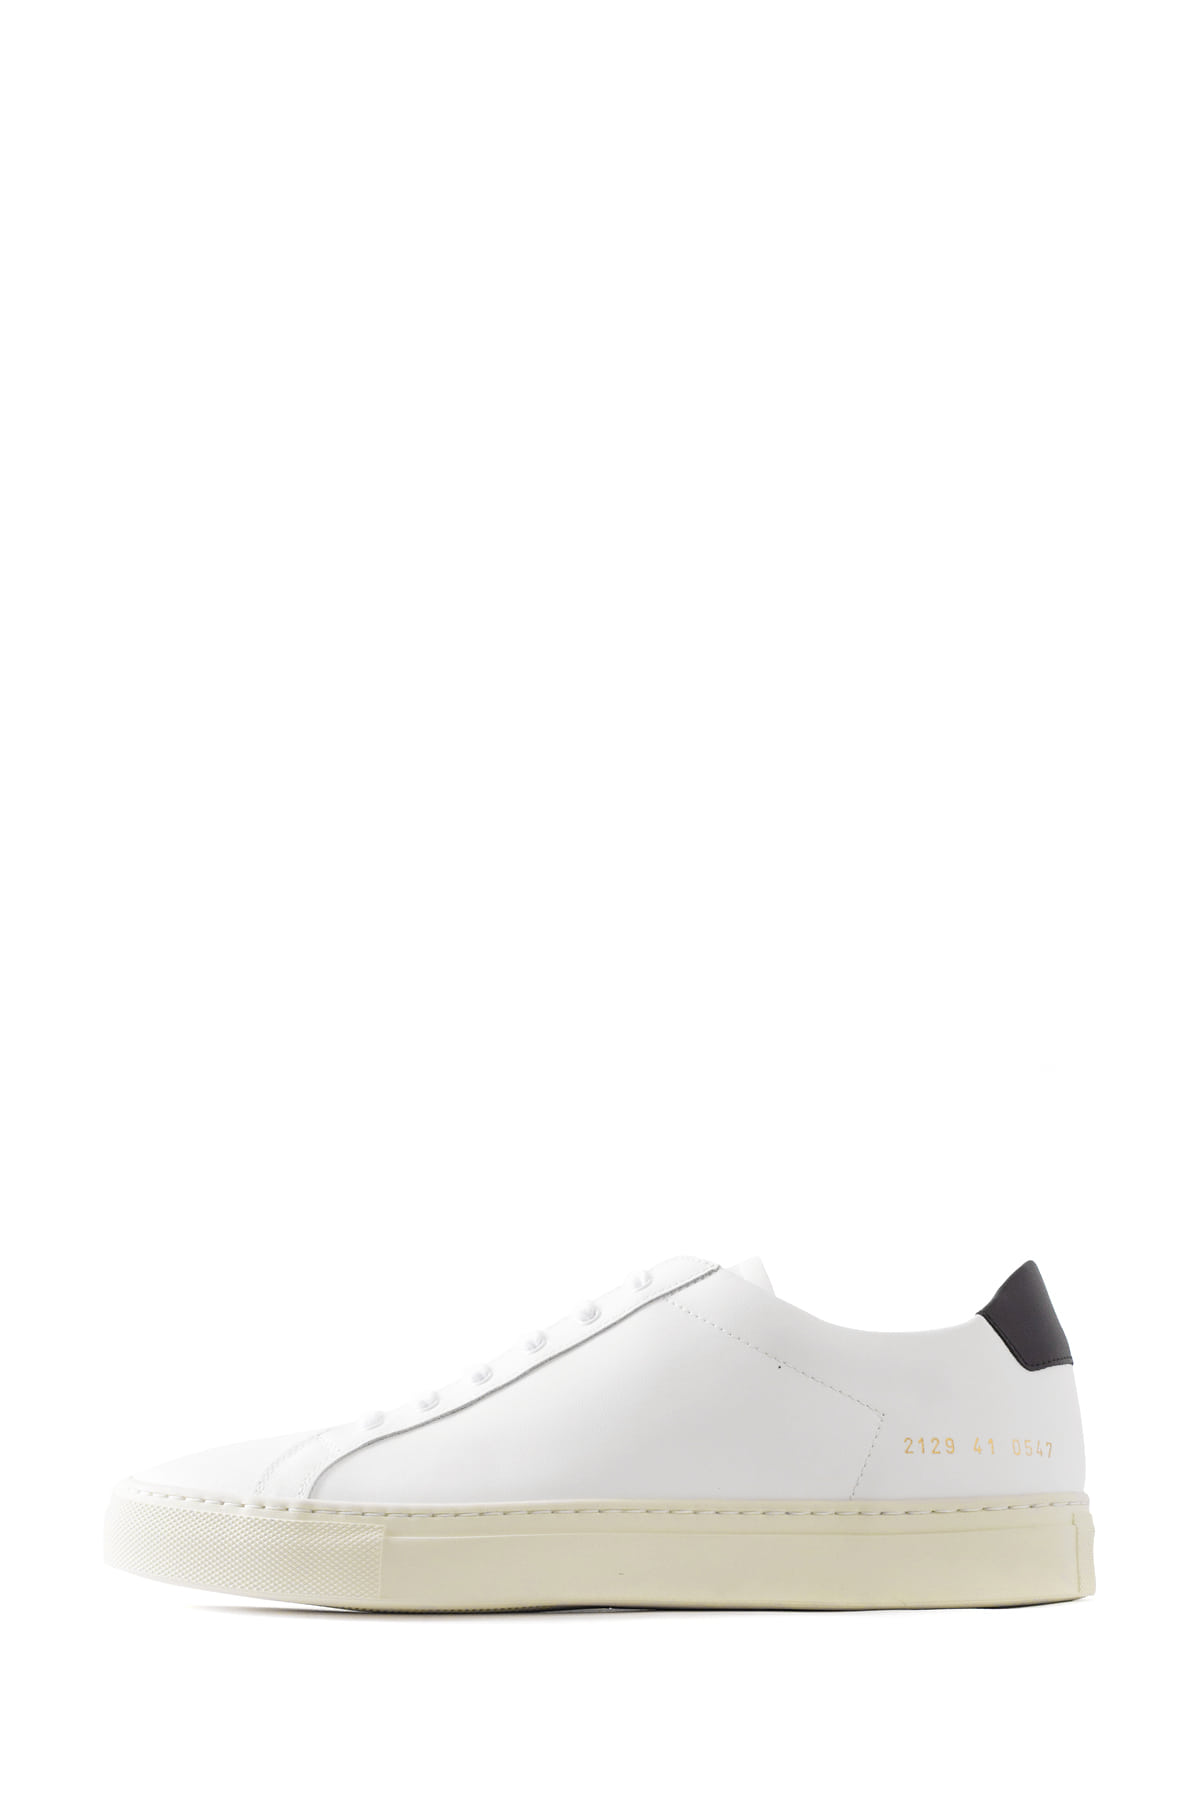 Common Projects : Achilles Retro Low 2129 (White / Black)